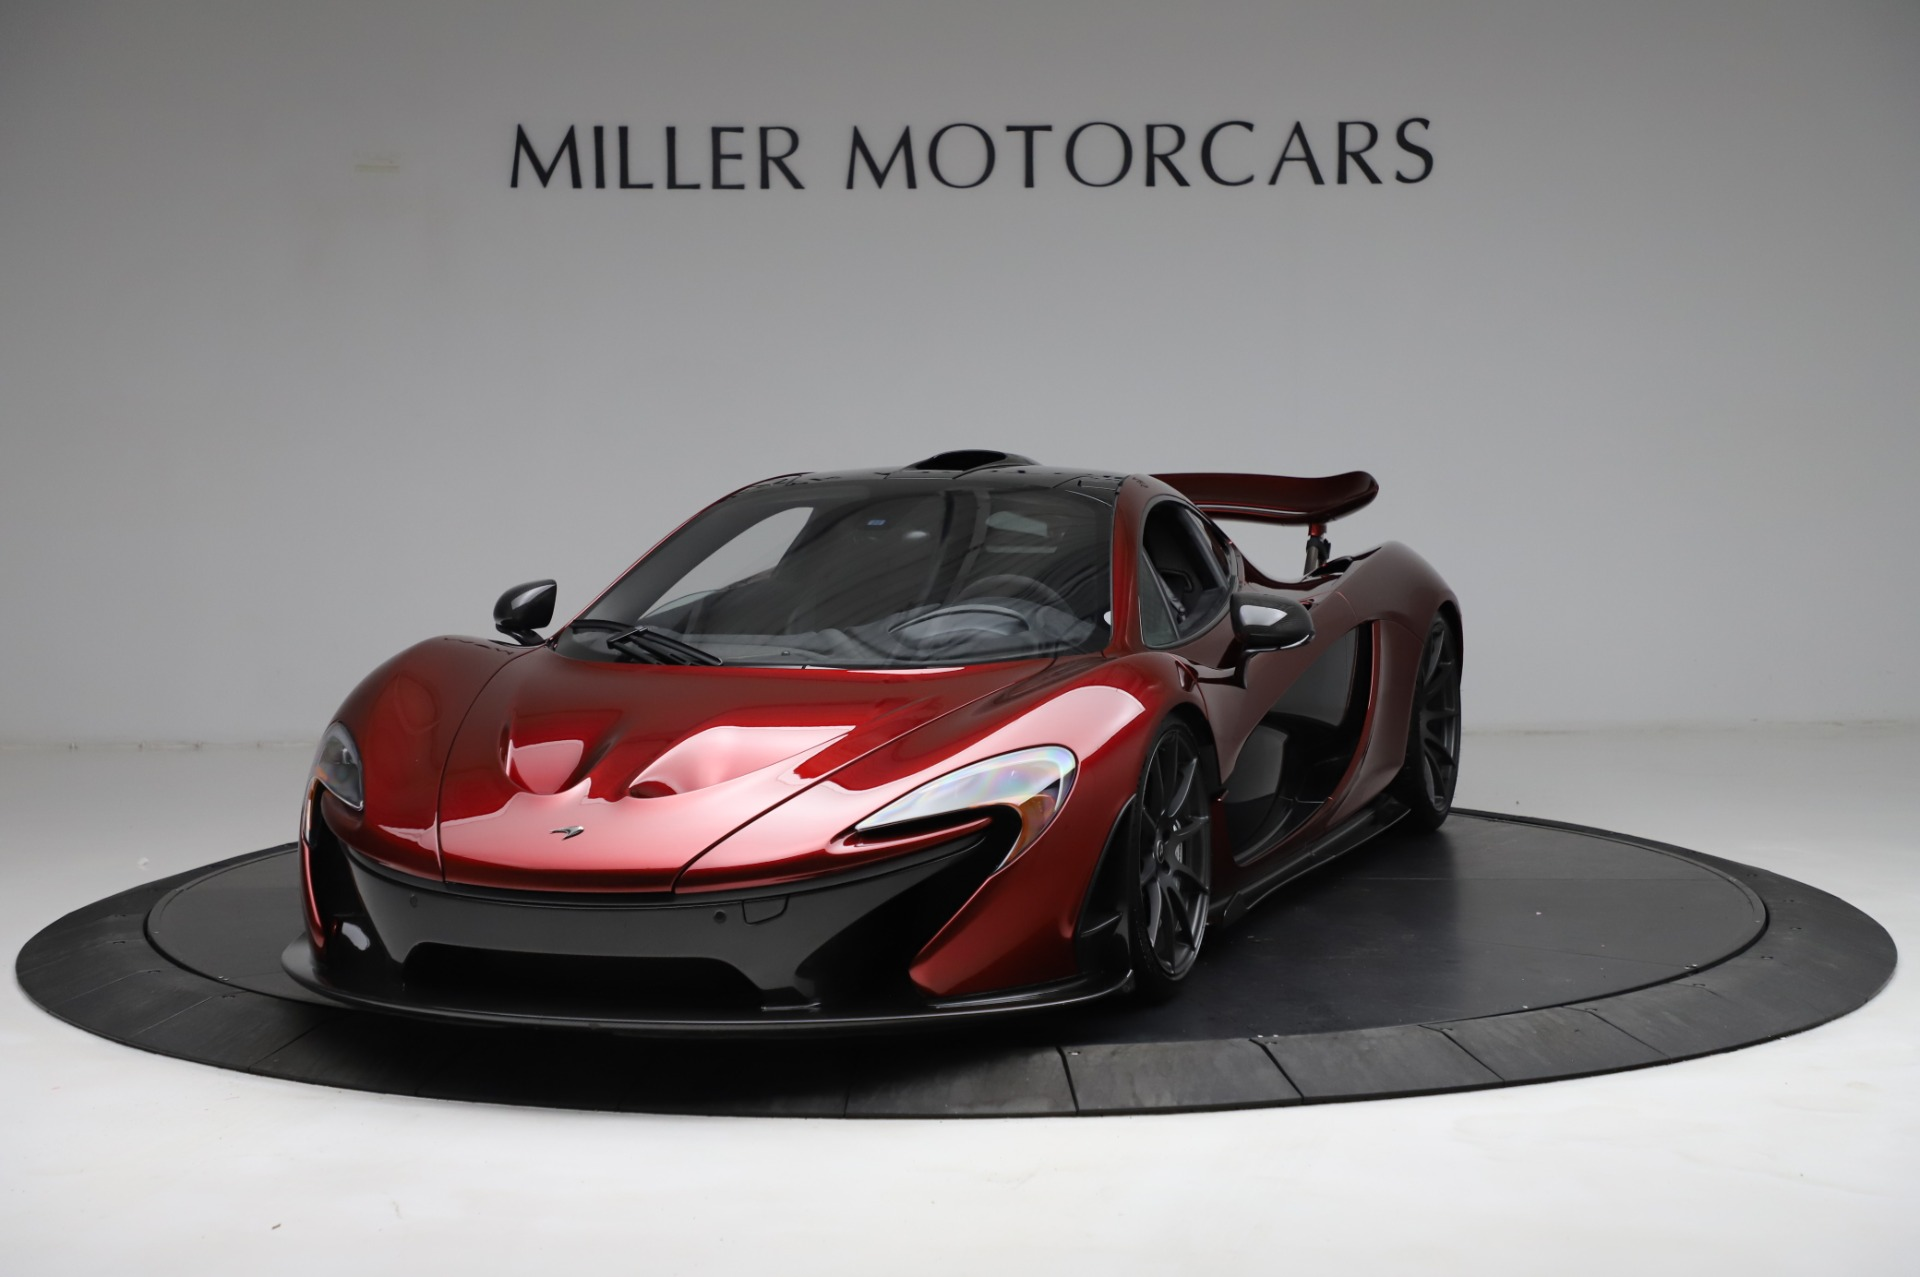 Used 2014 McLaren P1 for sale Sold at Pagani of Greenwich in Greenwich CT 06830 1